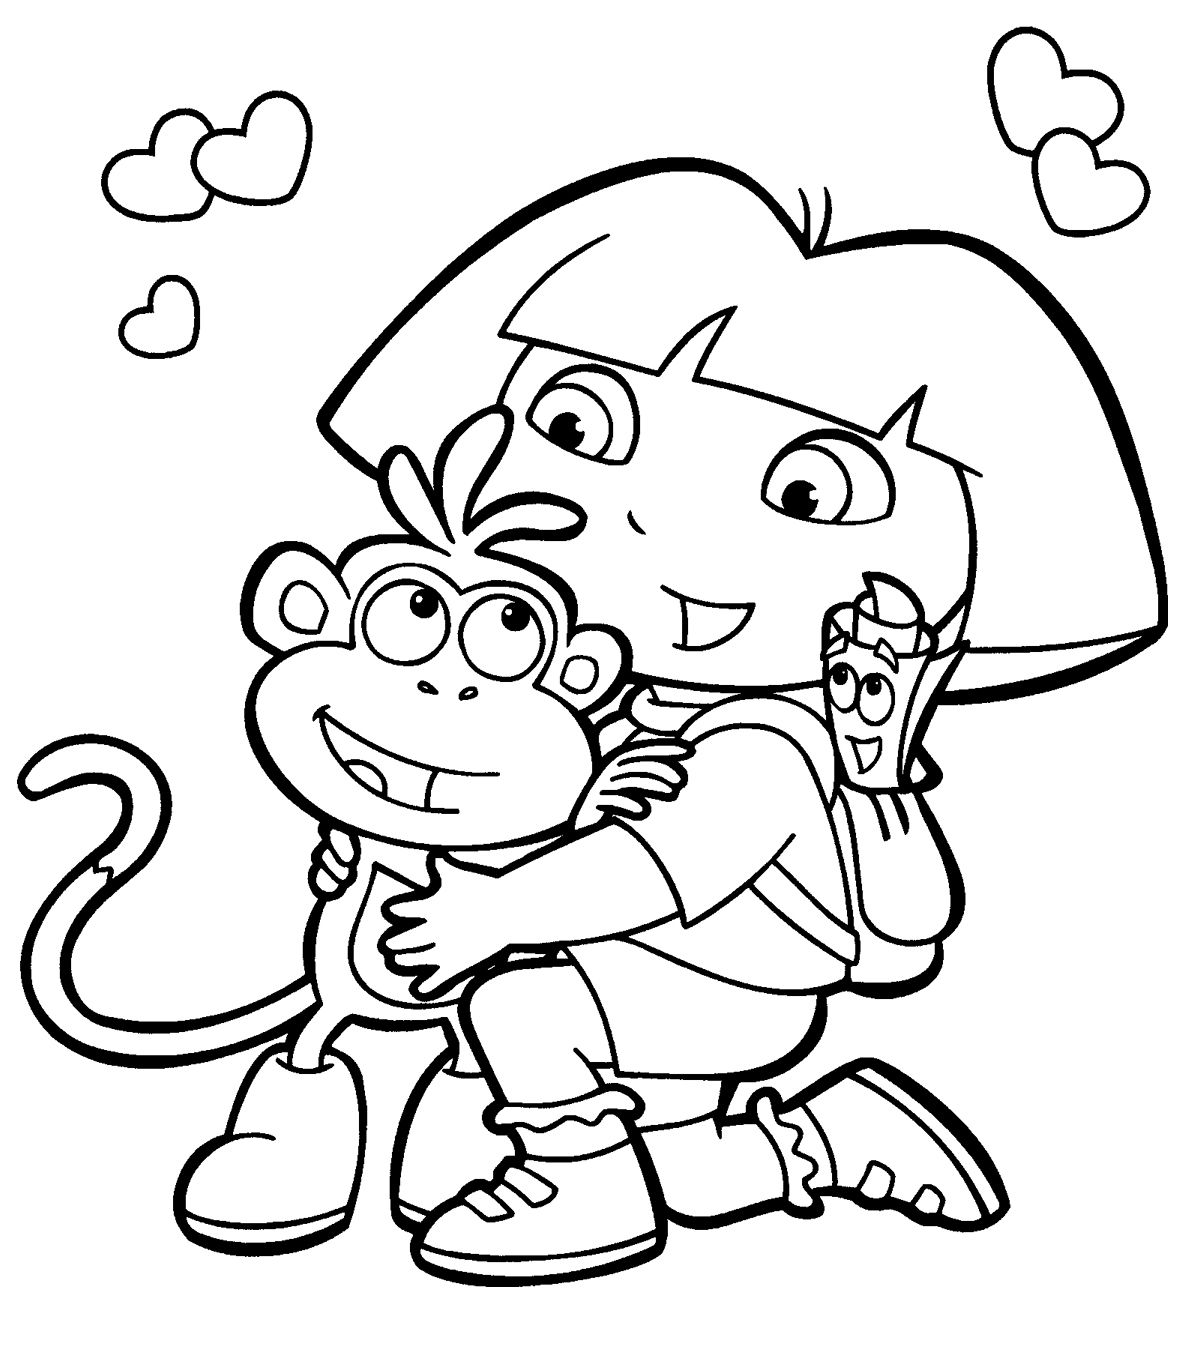 Dora Boots Coloring Page Valentine Coloring Pages Nick Jr Coloring Pages Dora Coloring